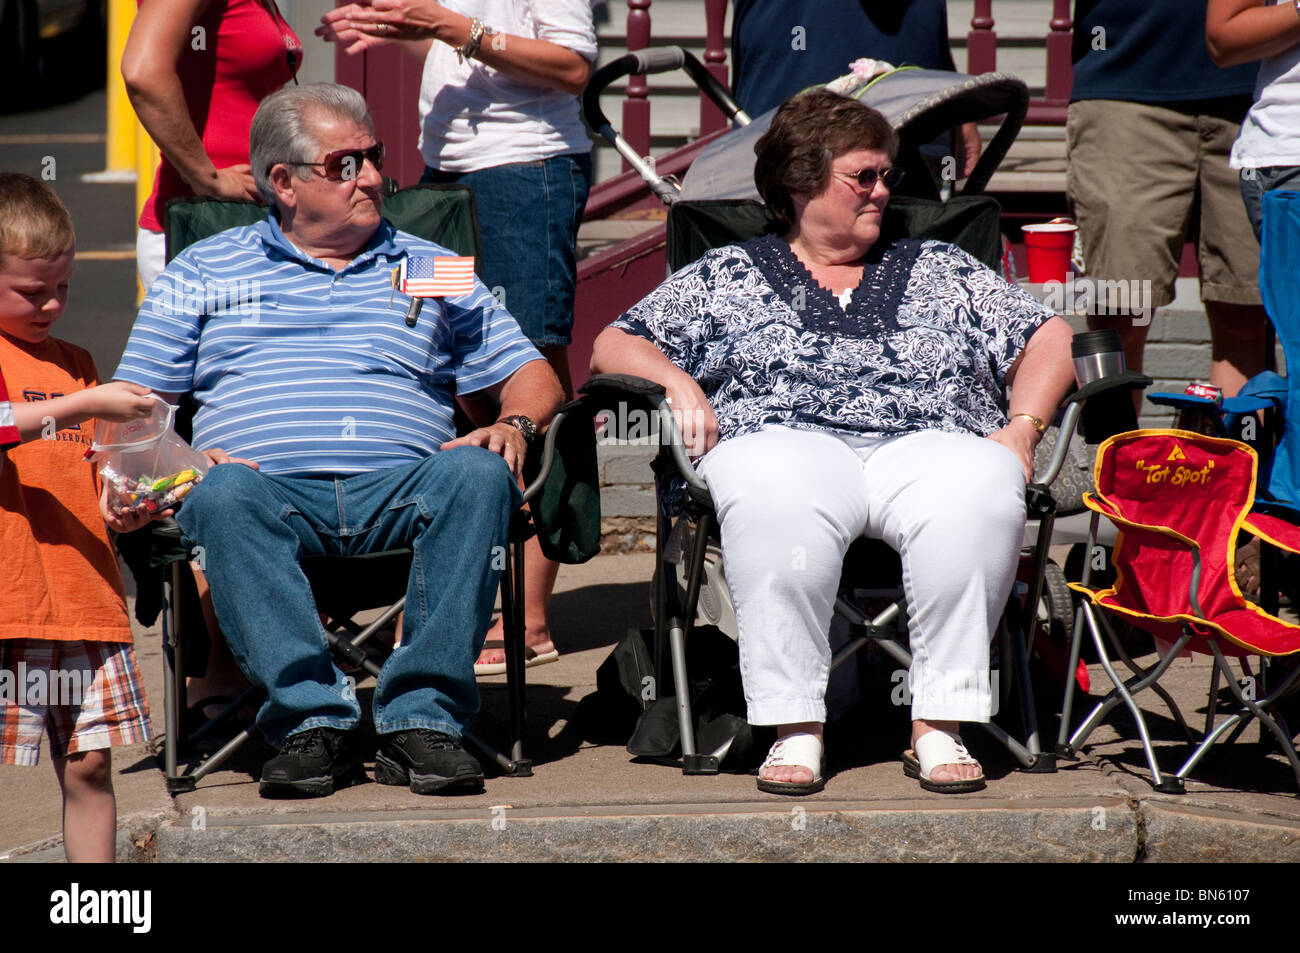 Overweight couple watching parade. - Stock Image